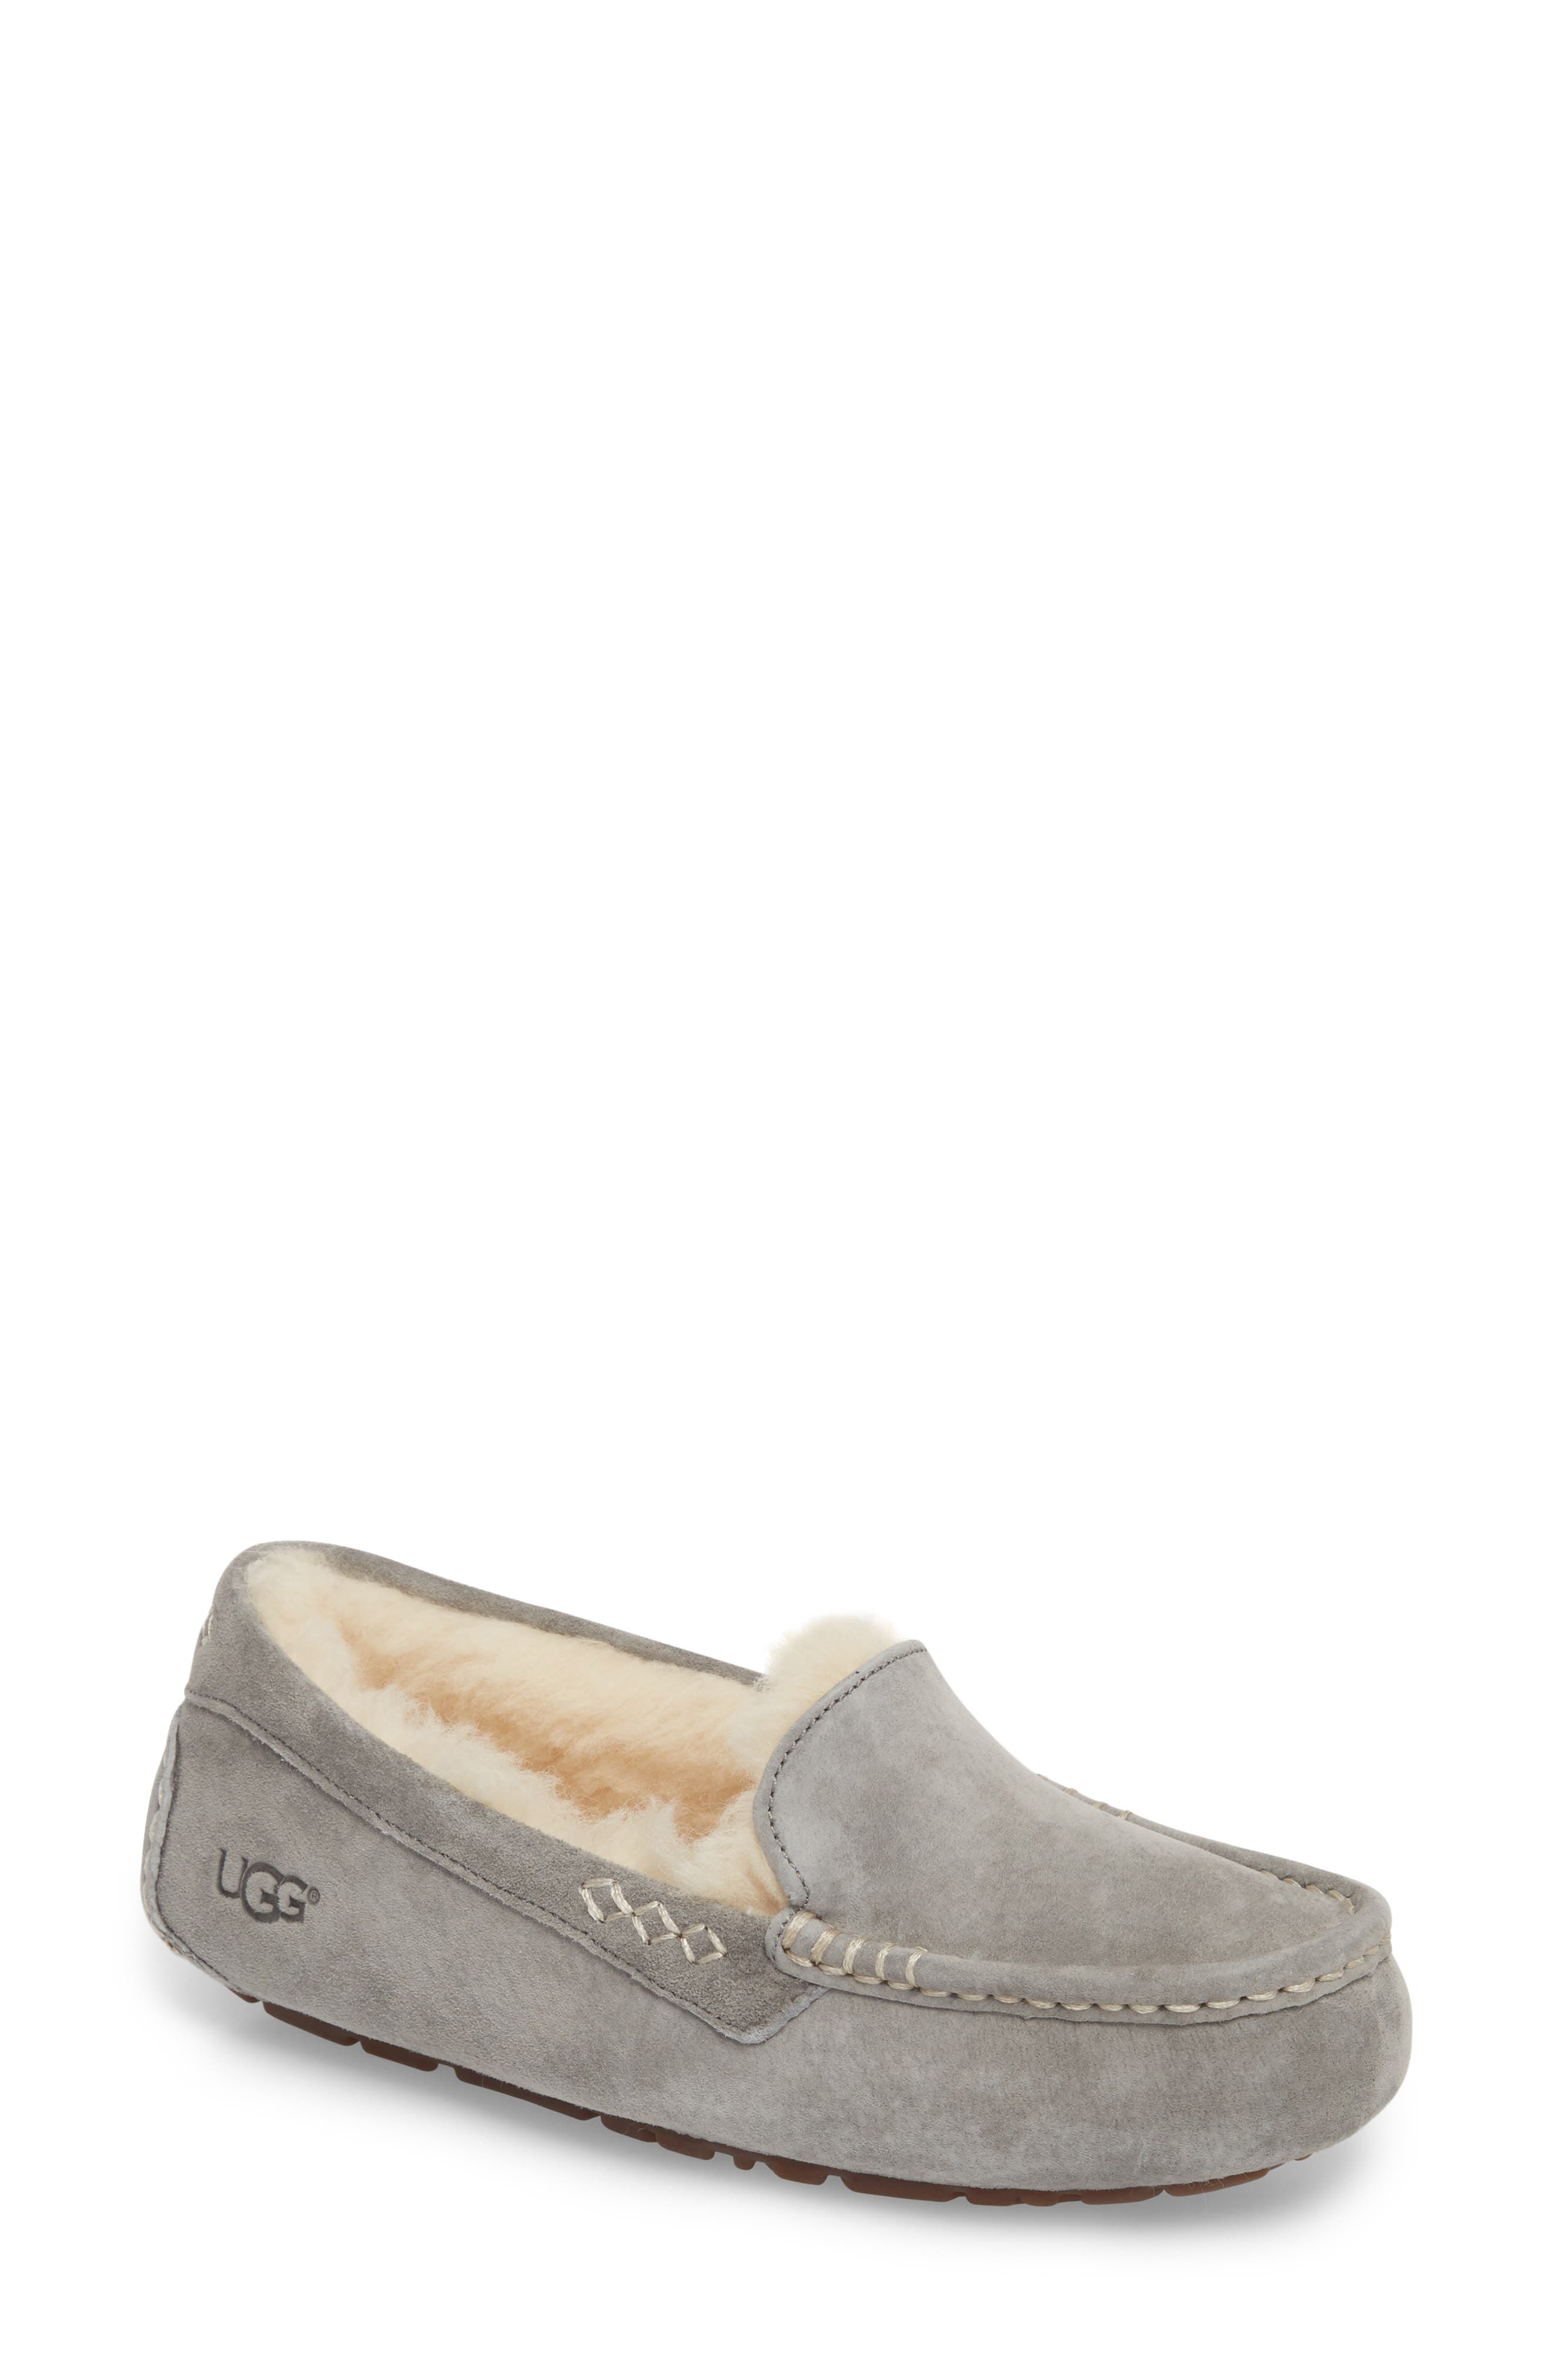 d680b54ff0bc72 UGG® Slippers for Women